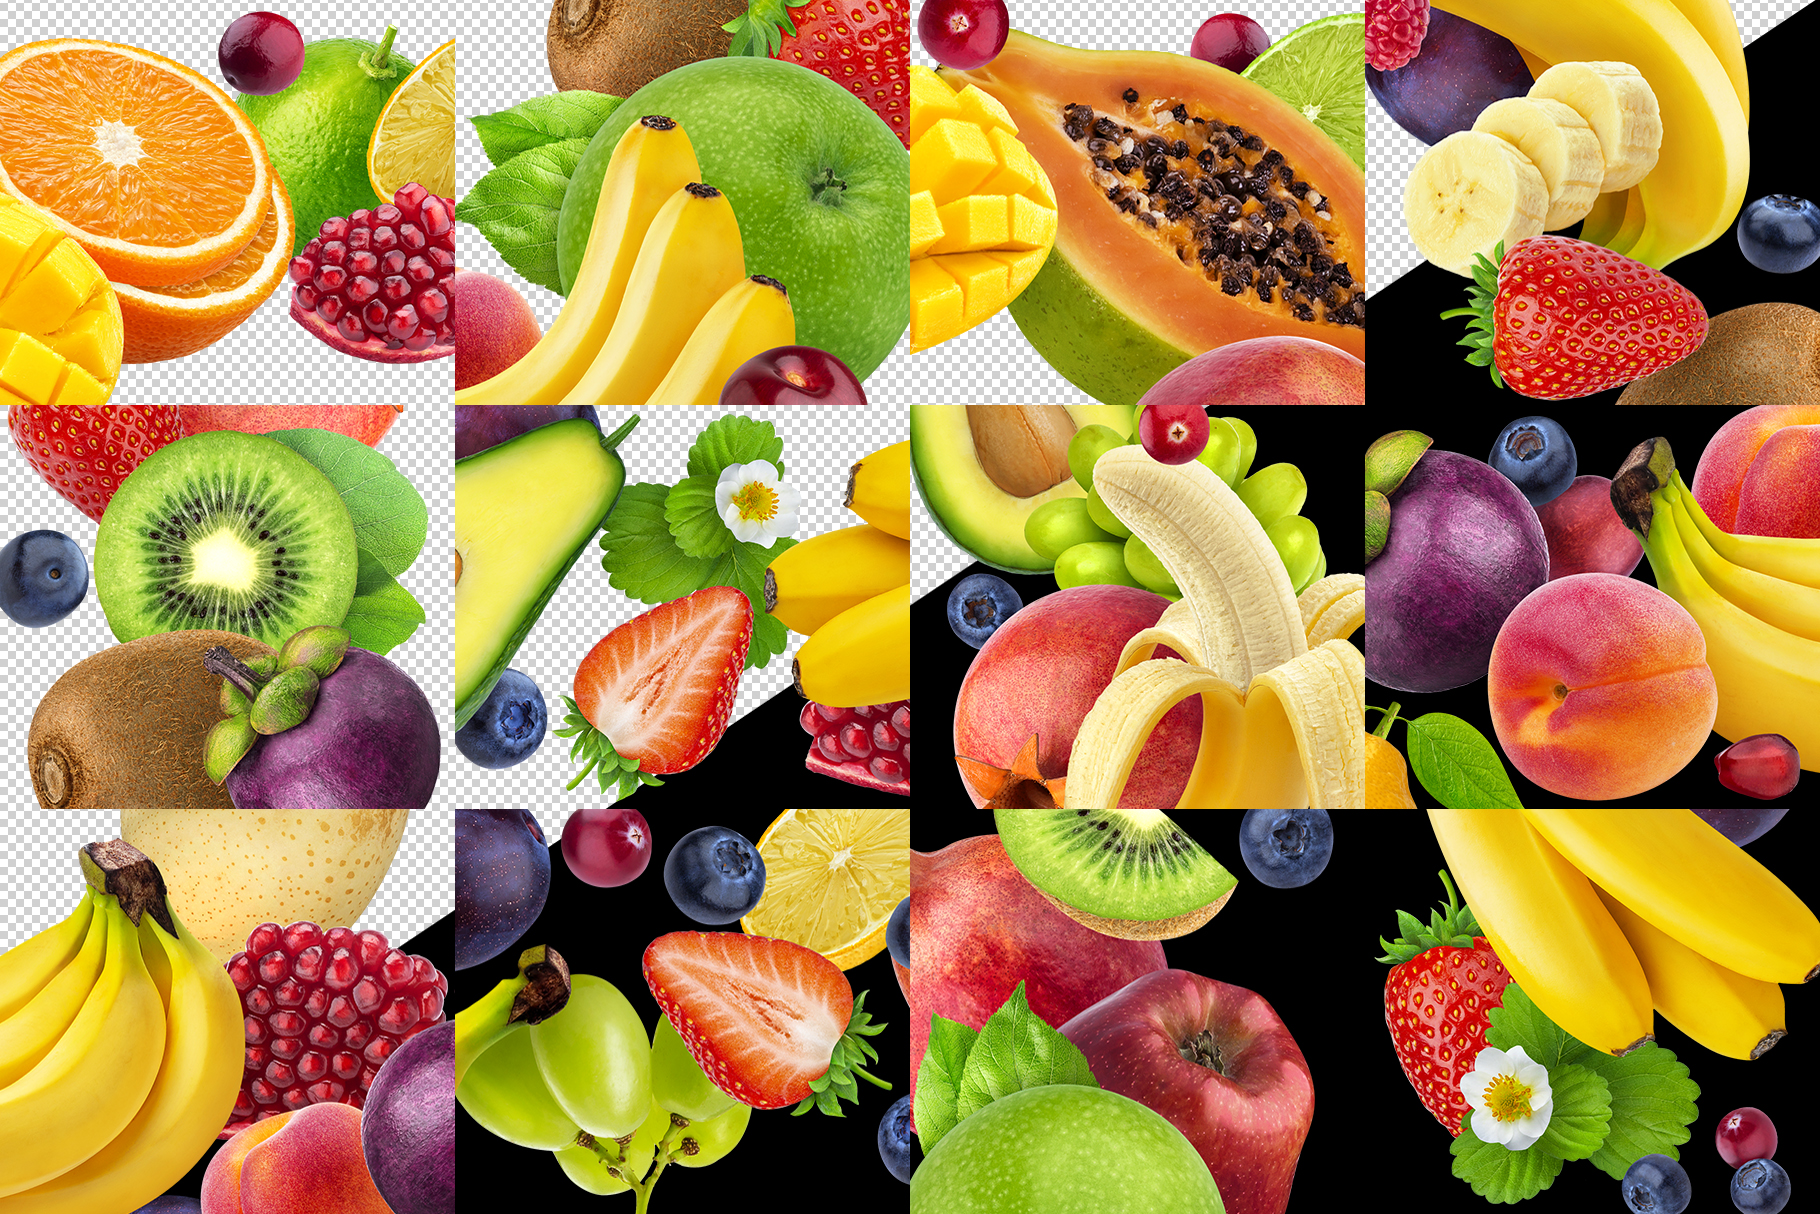 Fruits and berries alphabet, healthy alphabet example image 4